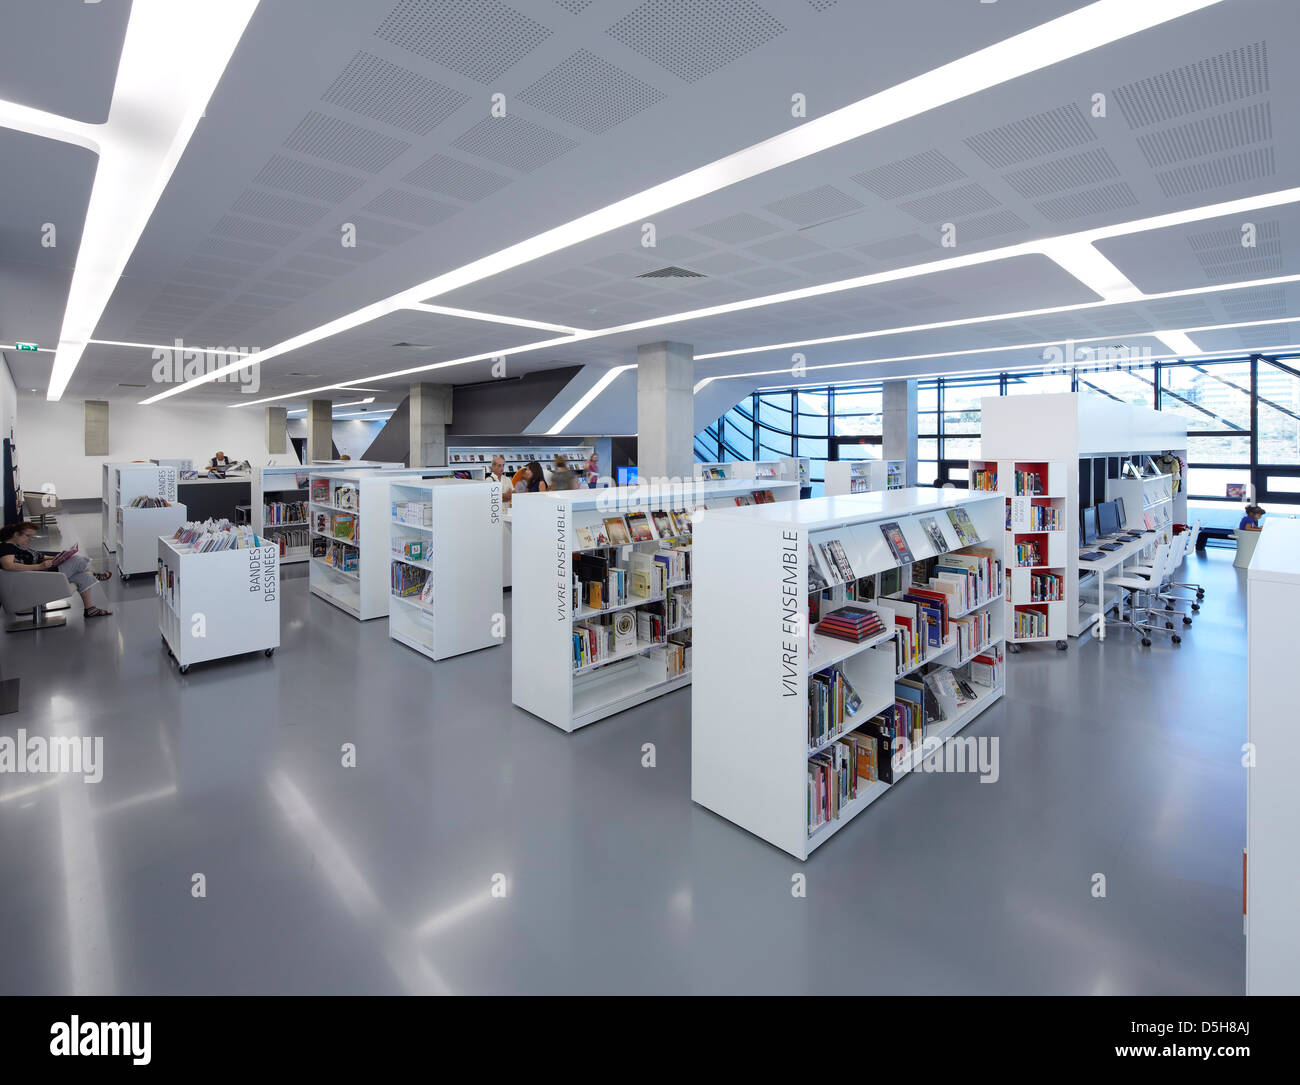 Pierresvives, Montpellier, France. Architect: Zaha Hadid Architects, 2012. Pierres Vives, general view of the library. - Stock Image